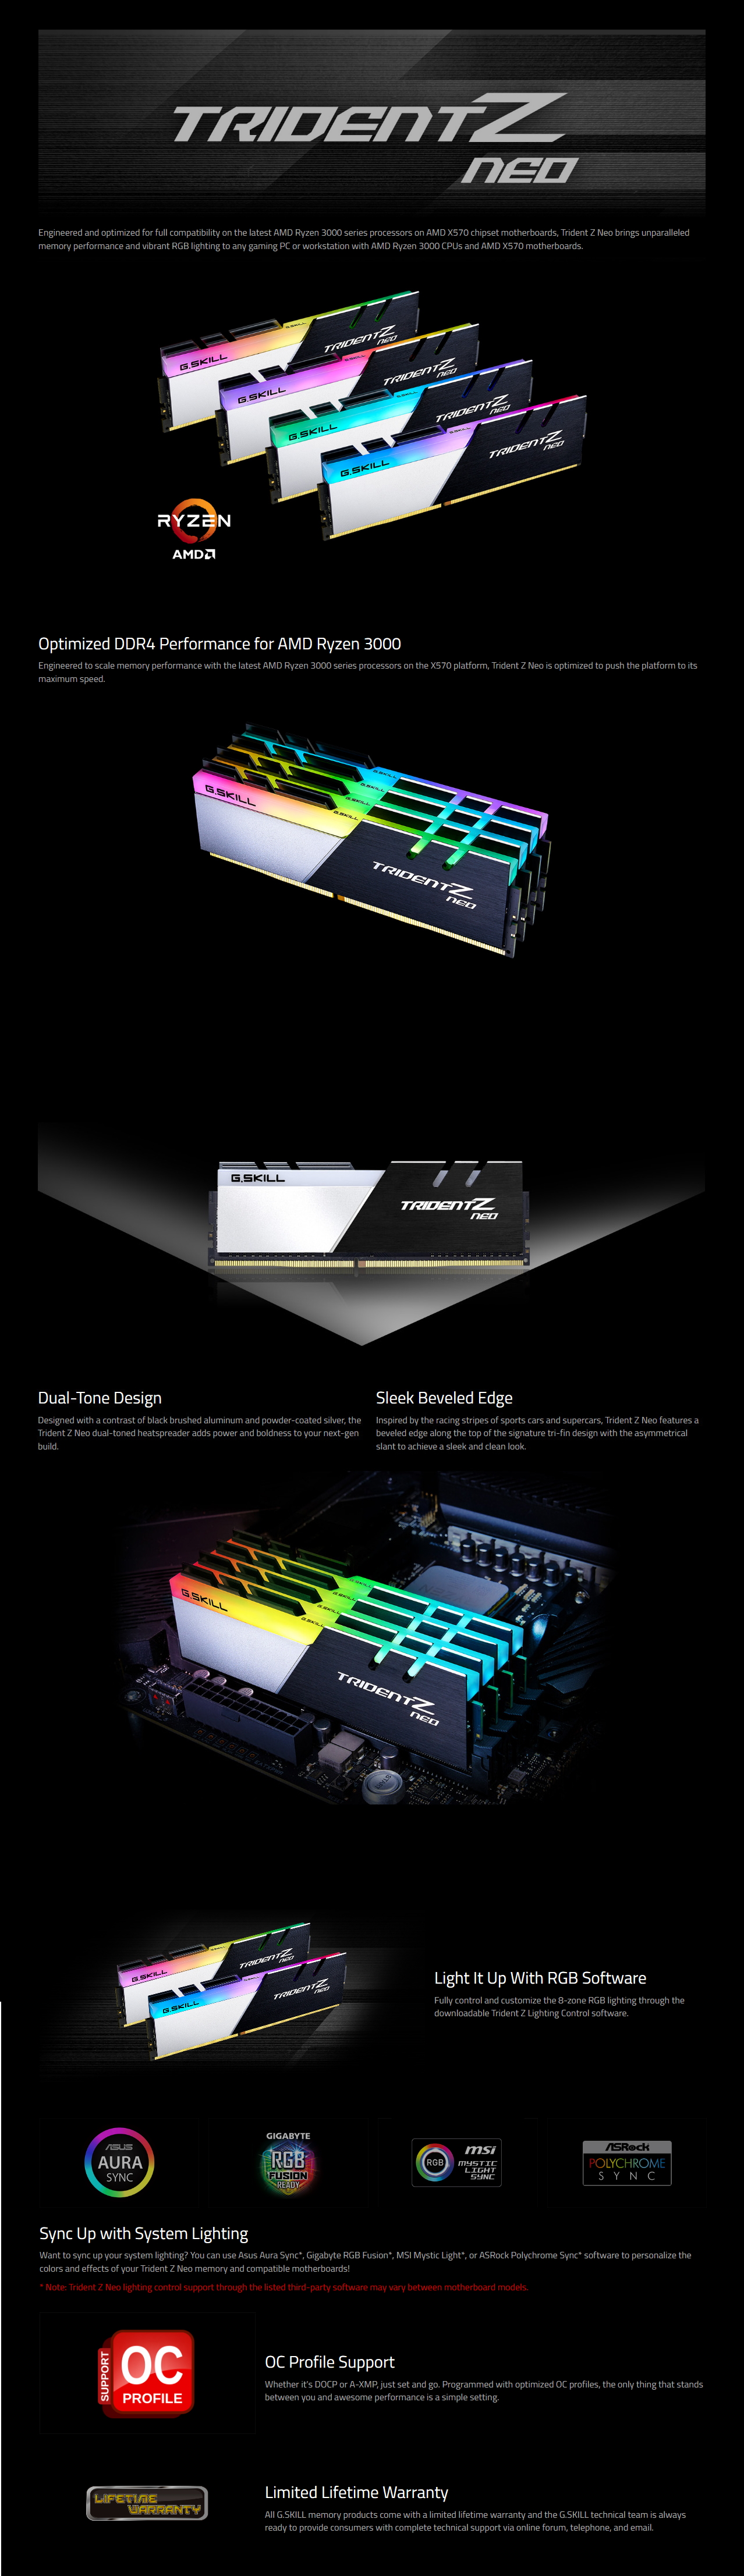 A large marketing image providing additional information about the product G.Skill 32GB Kit (2x16GB) DDR4 Trident Z RGB Neo C16 3200Mhz - Additional alt info not provided